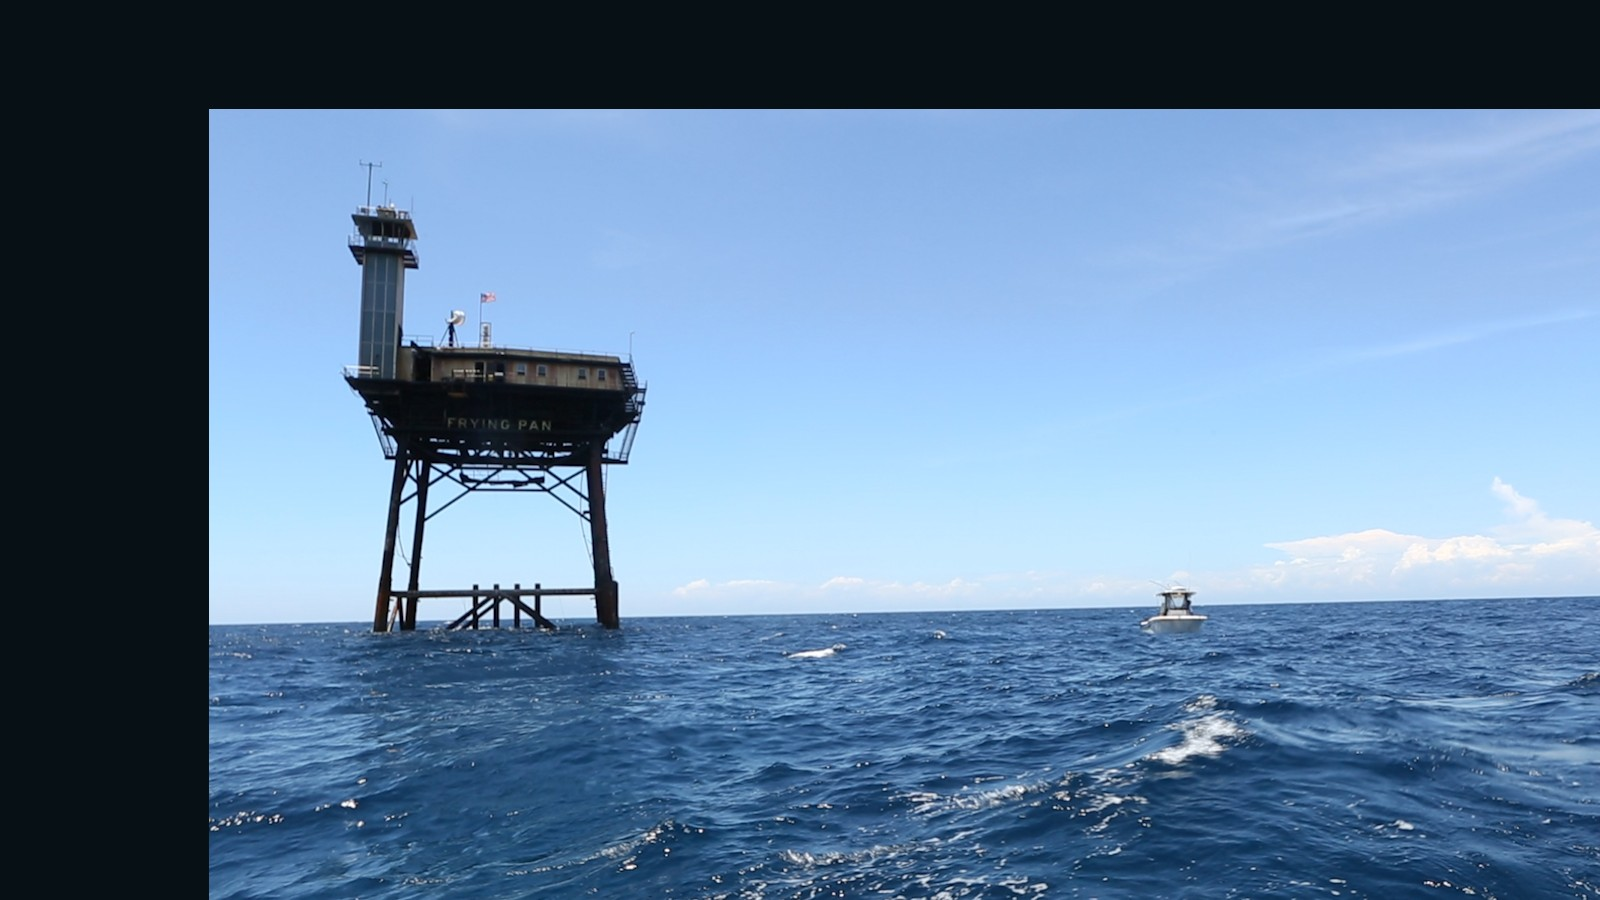 Frying pan tower offers ocean solitude and more cnn travel for Frying pan tower fishing